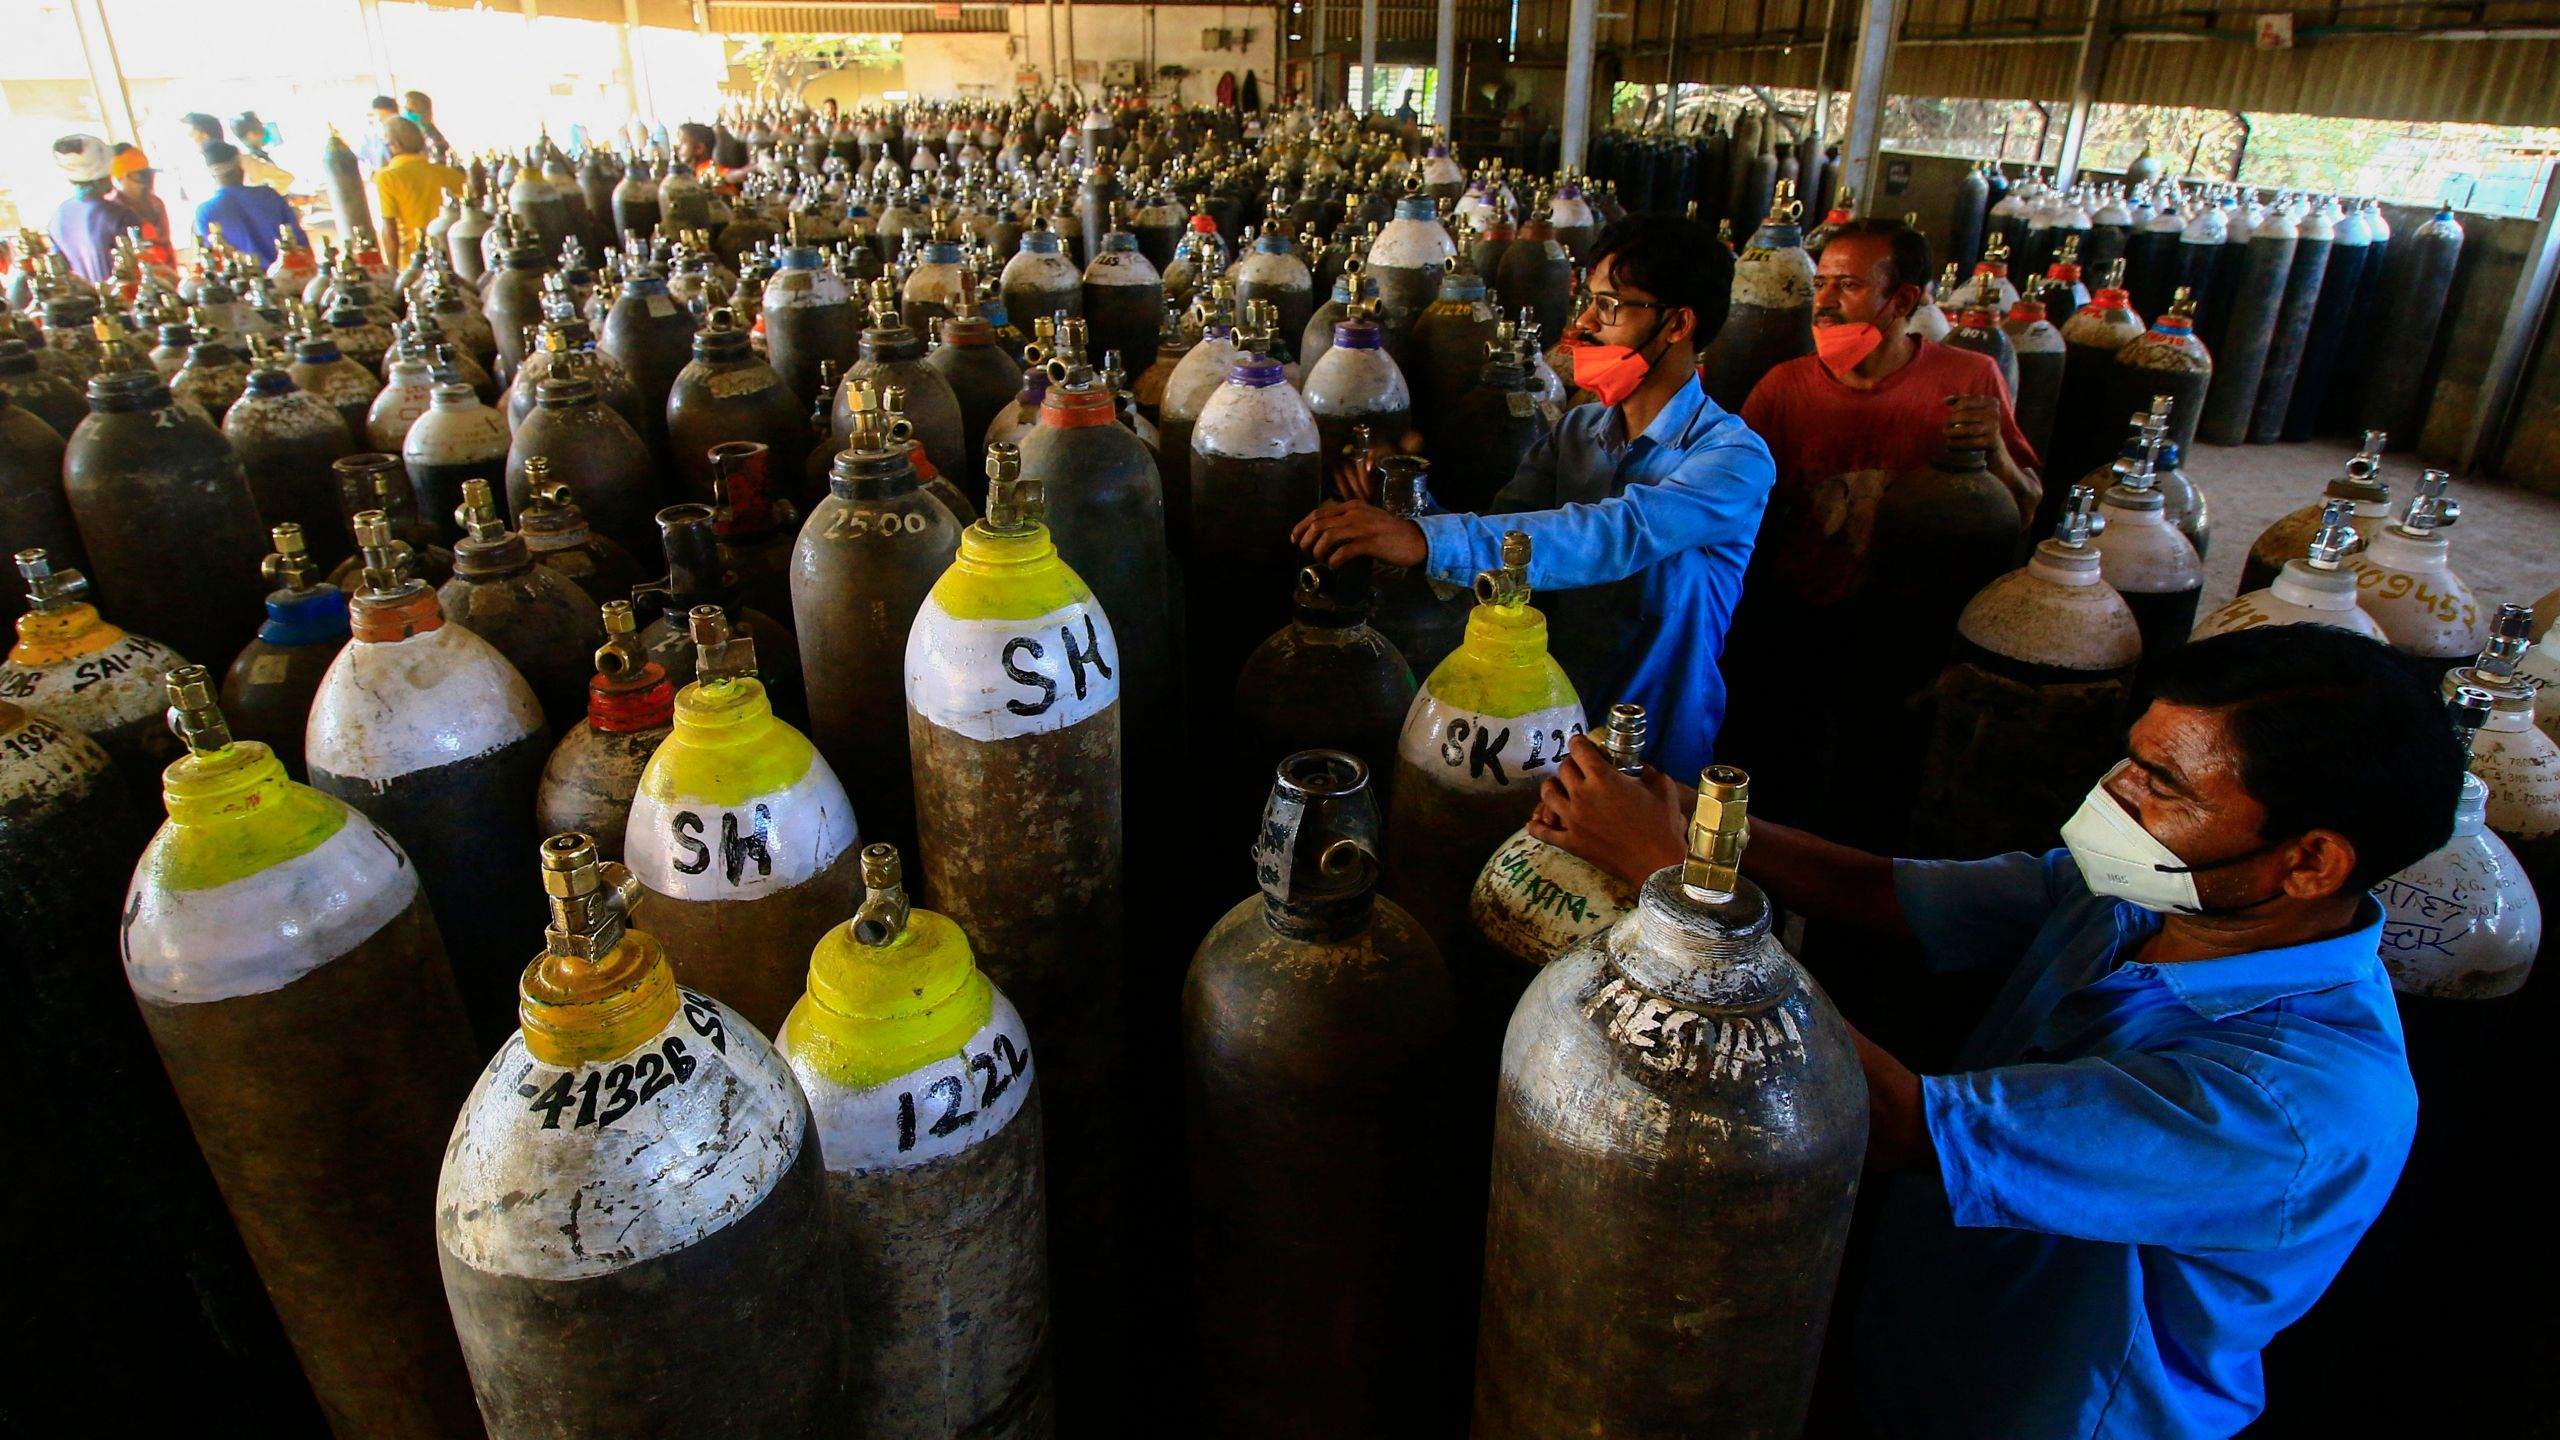 Workers prepare to fill medical oxygen cylinders for hospital use on COVID-19 patients on the outskirts of Jabalpur, India on April 18, 2021. (Uma Shankar/AFP via Getty Images)